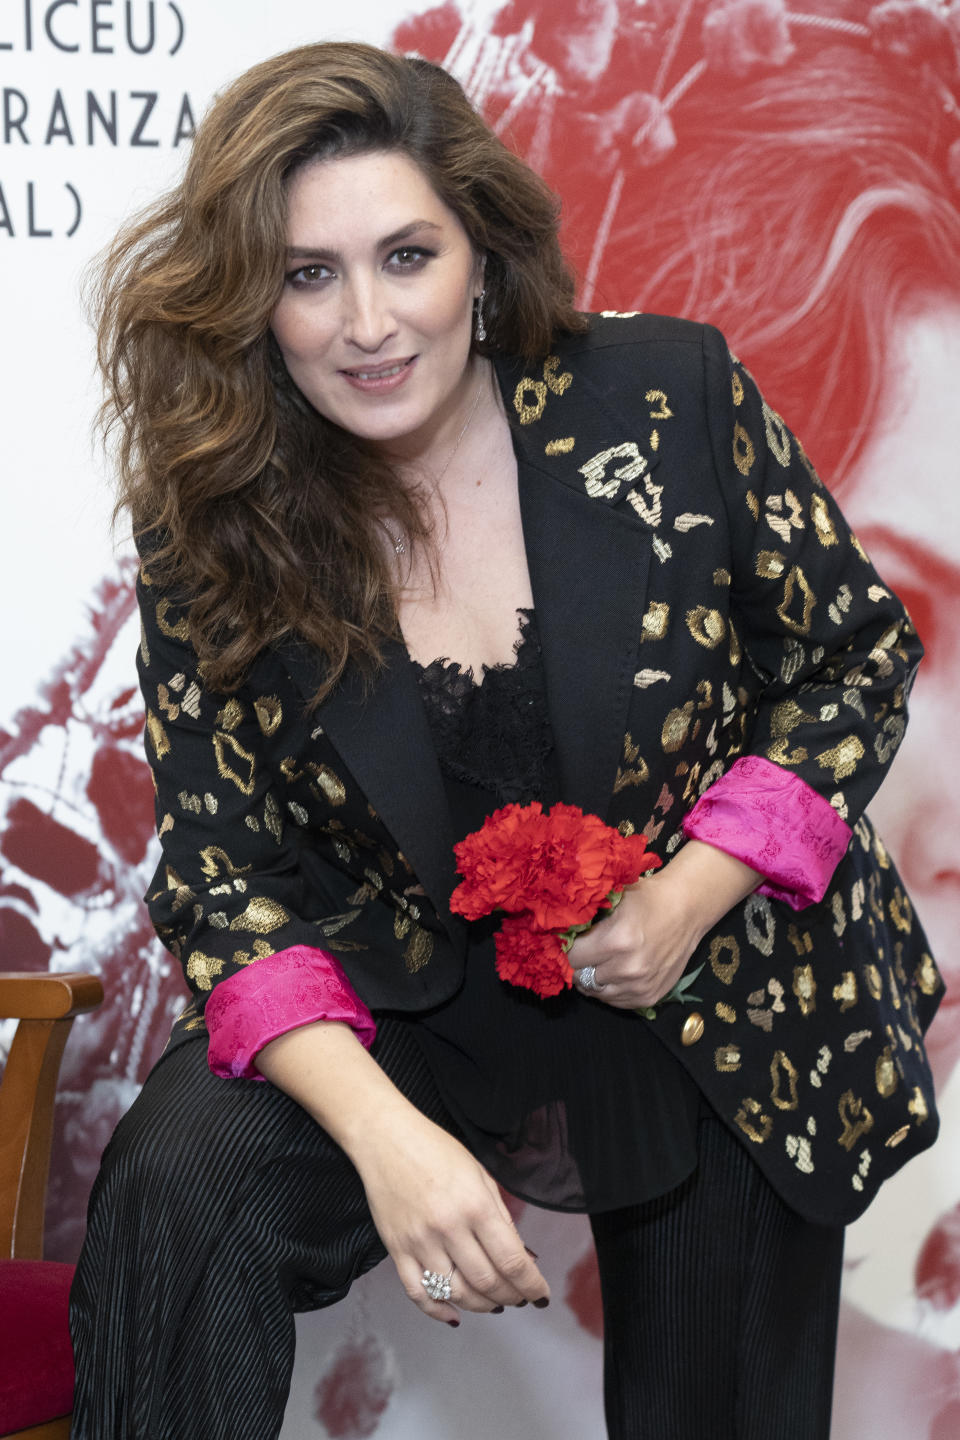 Singer Estrella Morente attends the 'Copla' new album presentation at Royal Theatre on February 21, 2019 in Madrid, Spain (Photo by Oscar Gonzalez/NurPhoto via Getty Images)